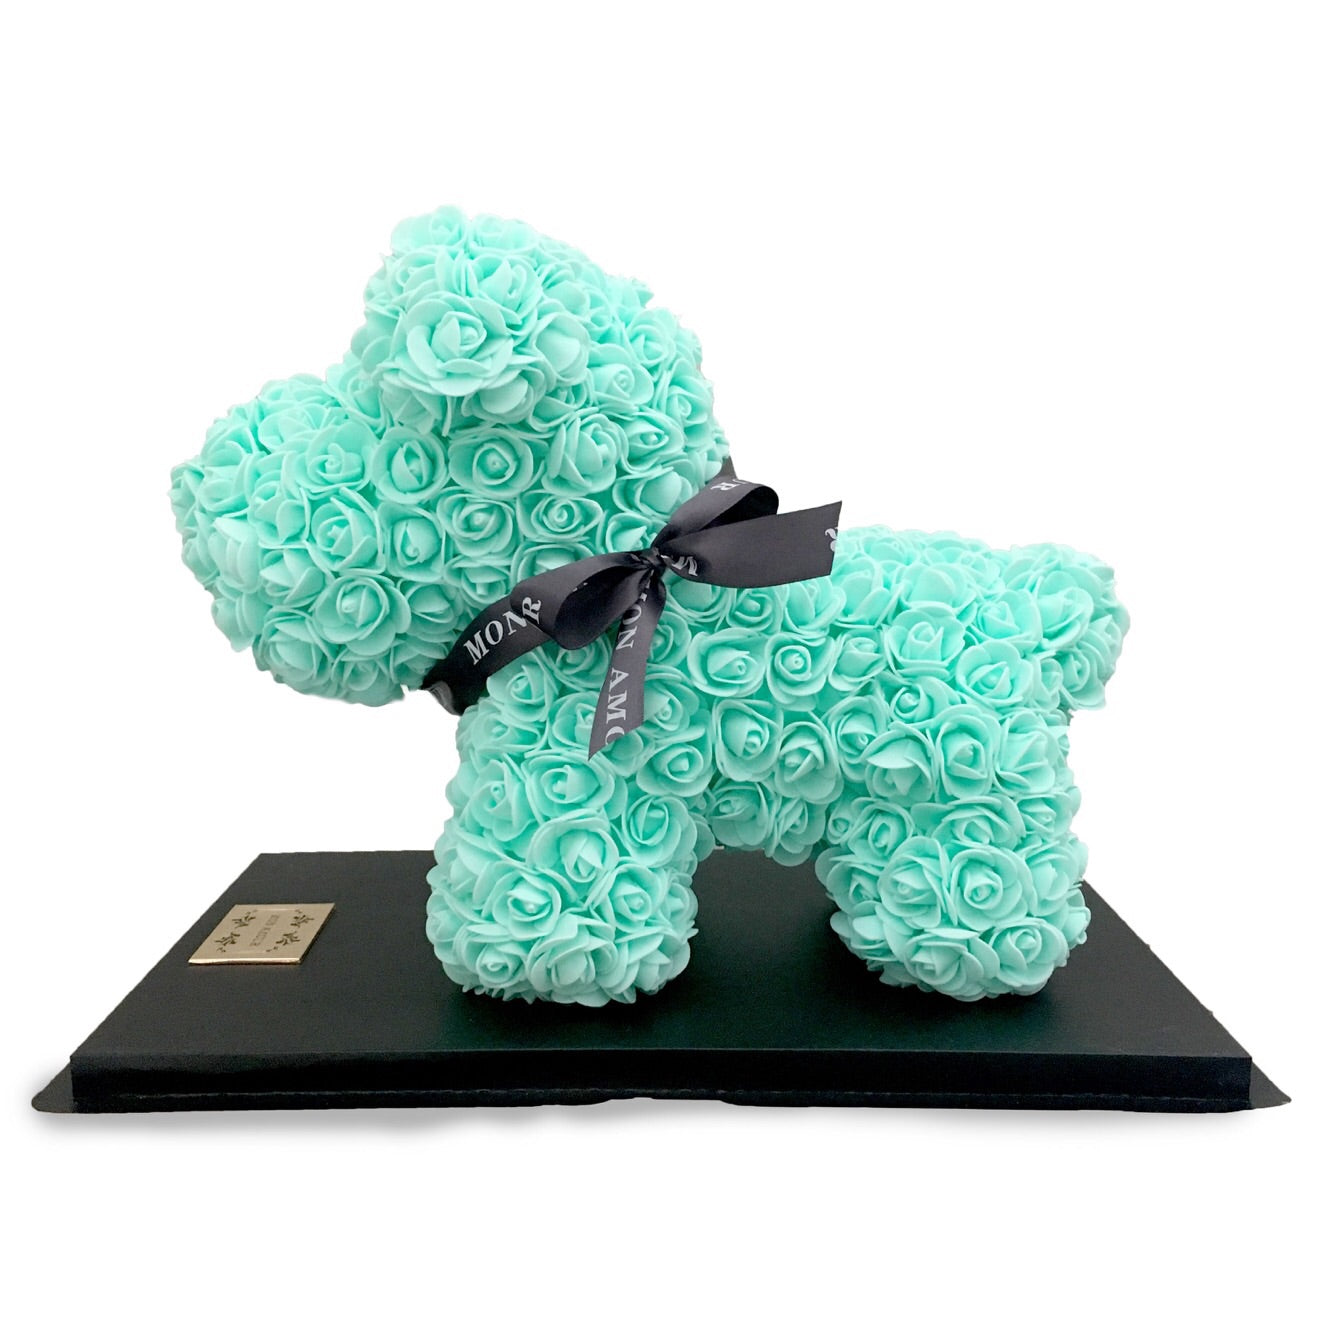 Mon Amour, Roses, puppy, Dog, Blue roses, home decor, For Her, Mint, Green, Cute